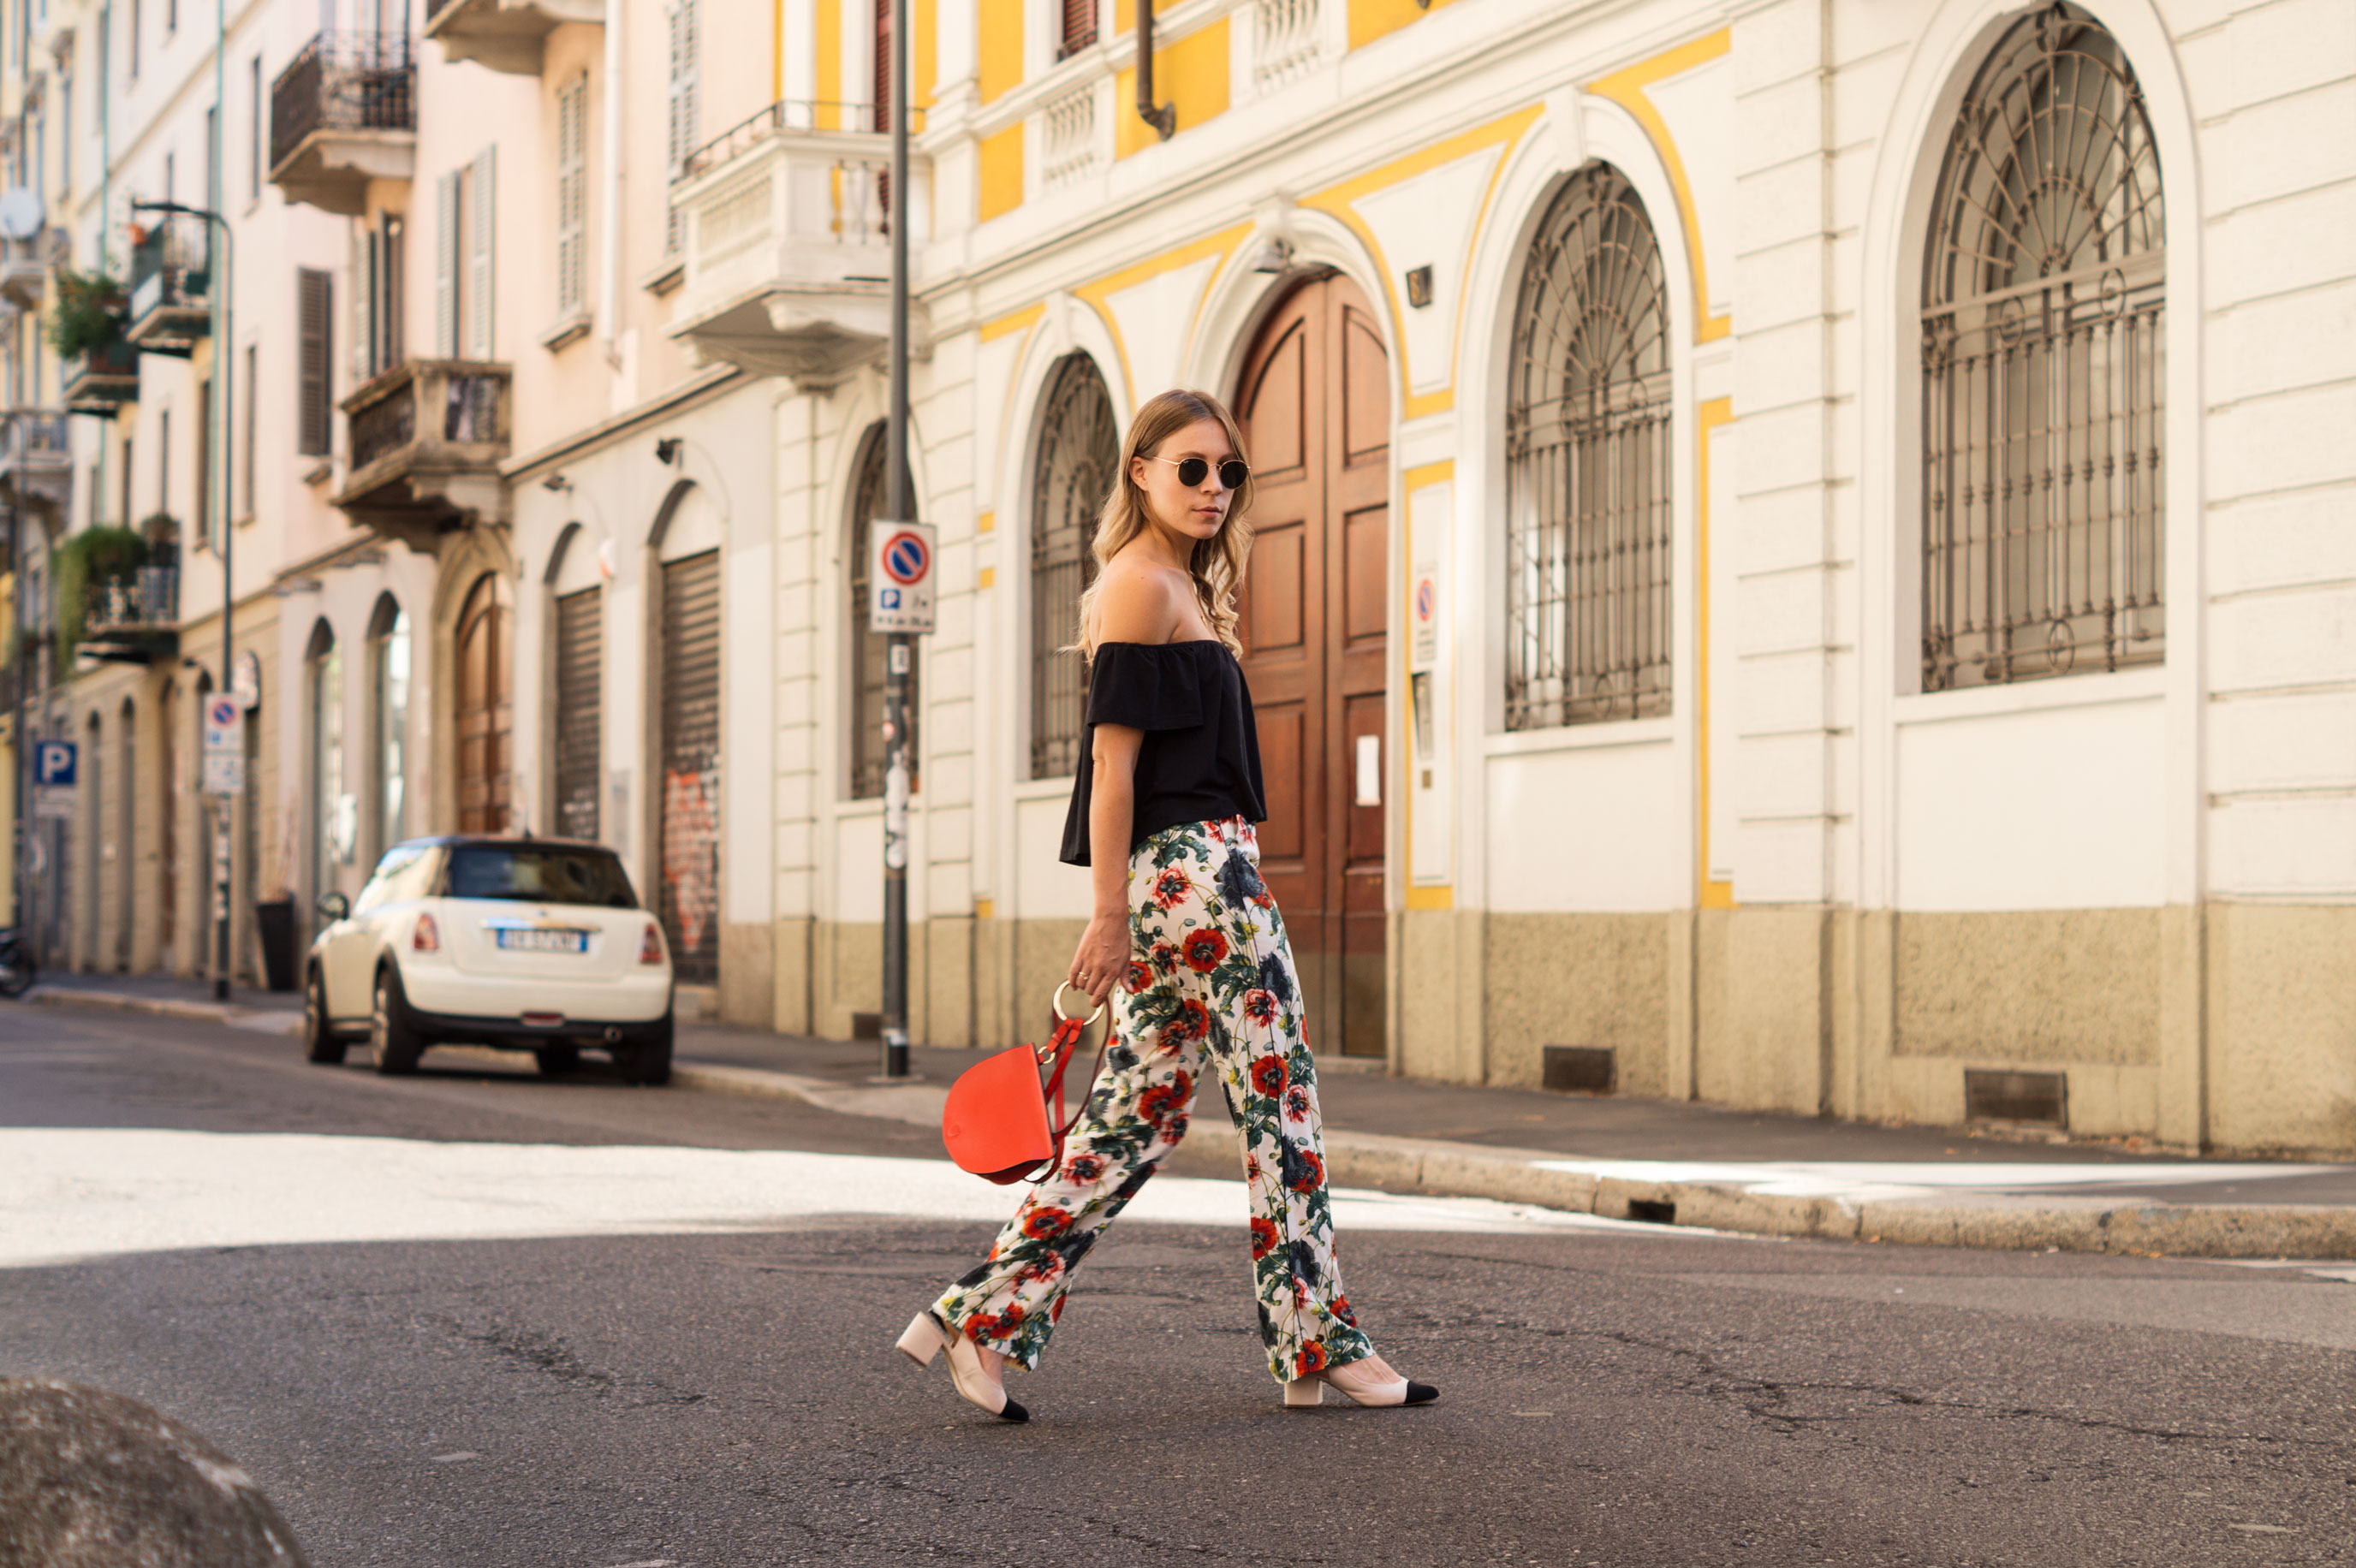 H&M Printhose Milan Sariety Fashionblogger Sommerlook Mailand rote Tasche Chanel Schuhe Dupes Summer Floral Print-6